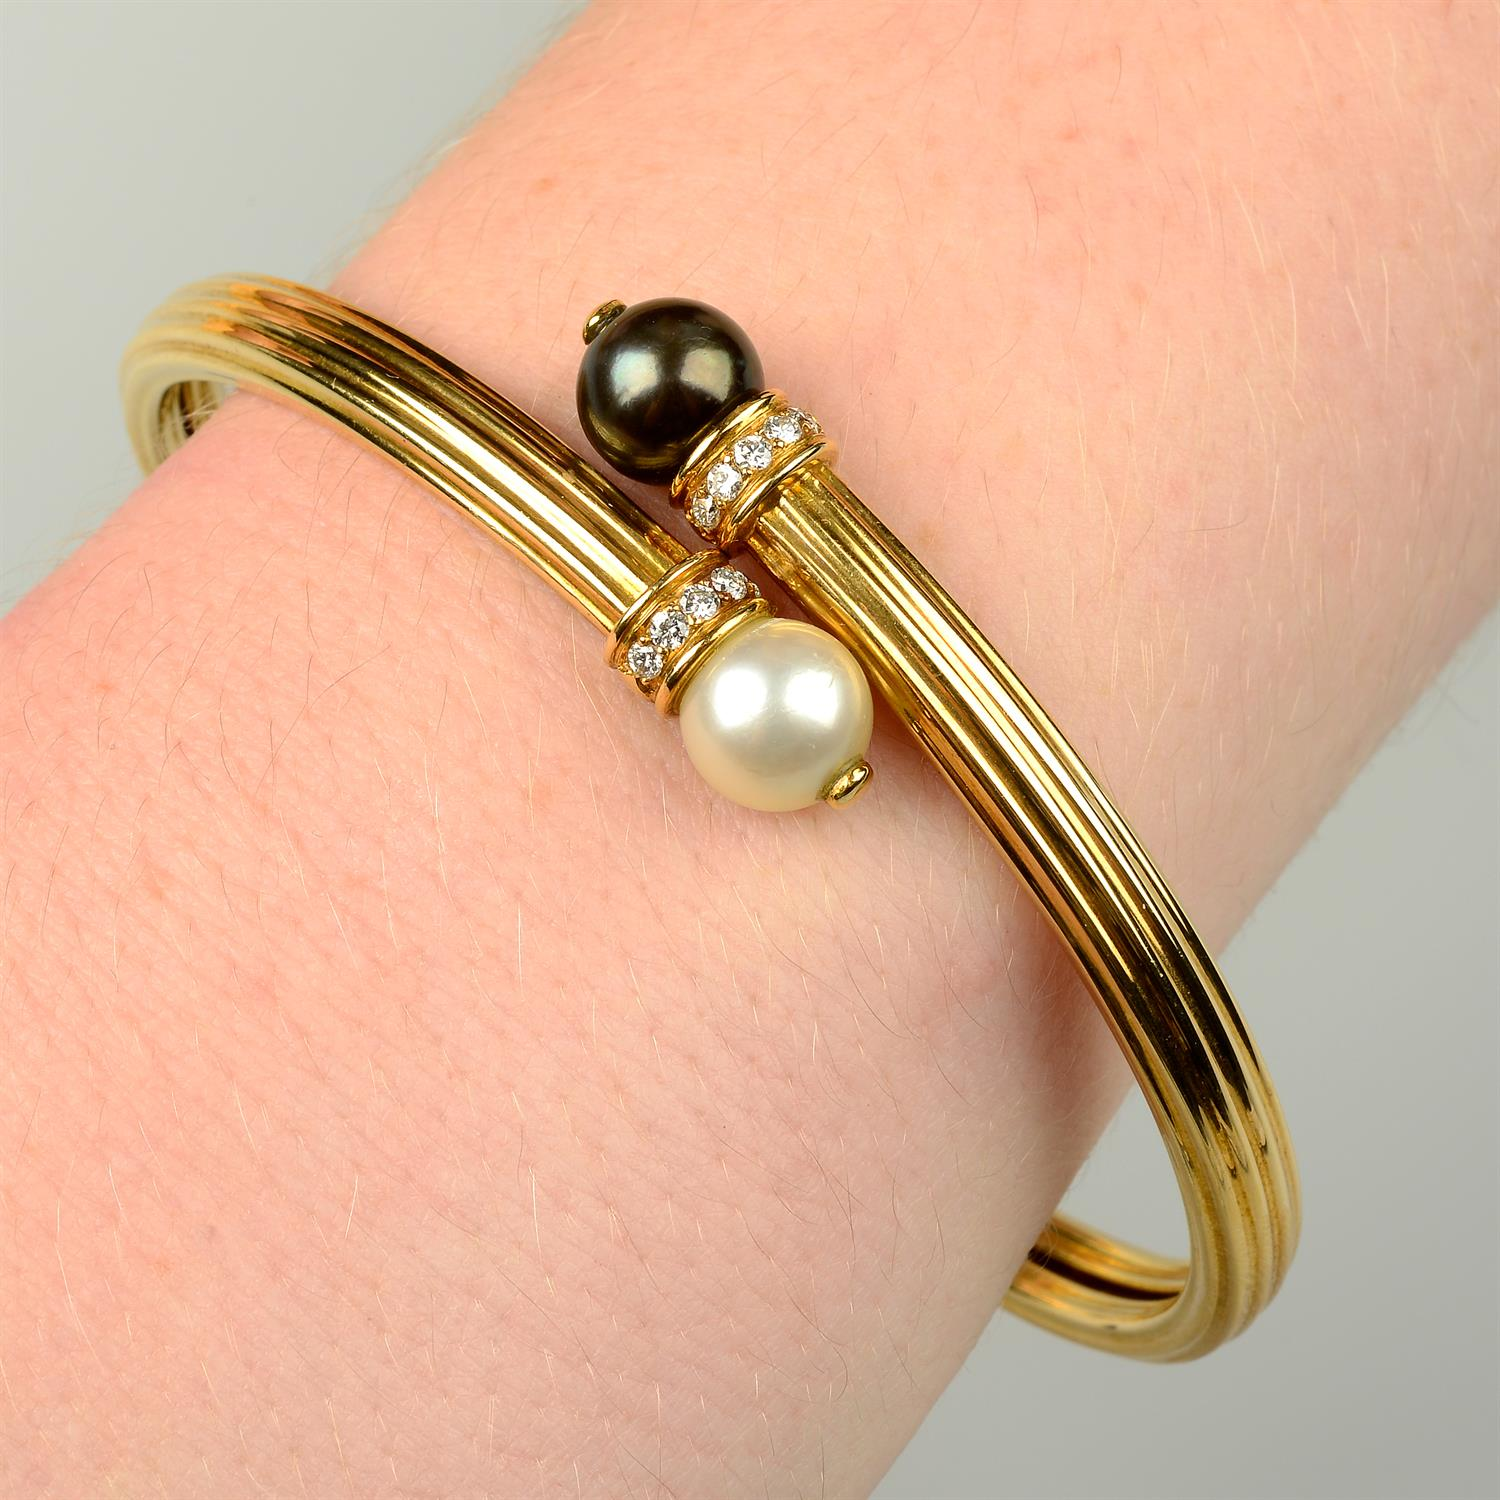 An 18ct gold grooved crossover bangle, with vari-hue cultured pearl and brilliant-cut diamond